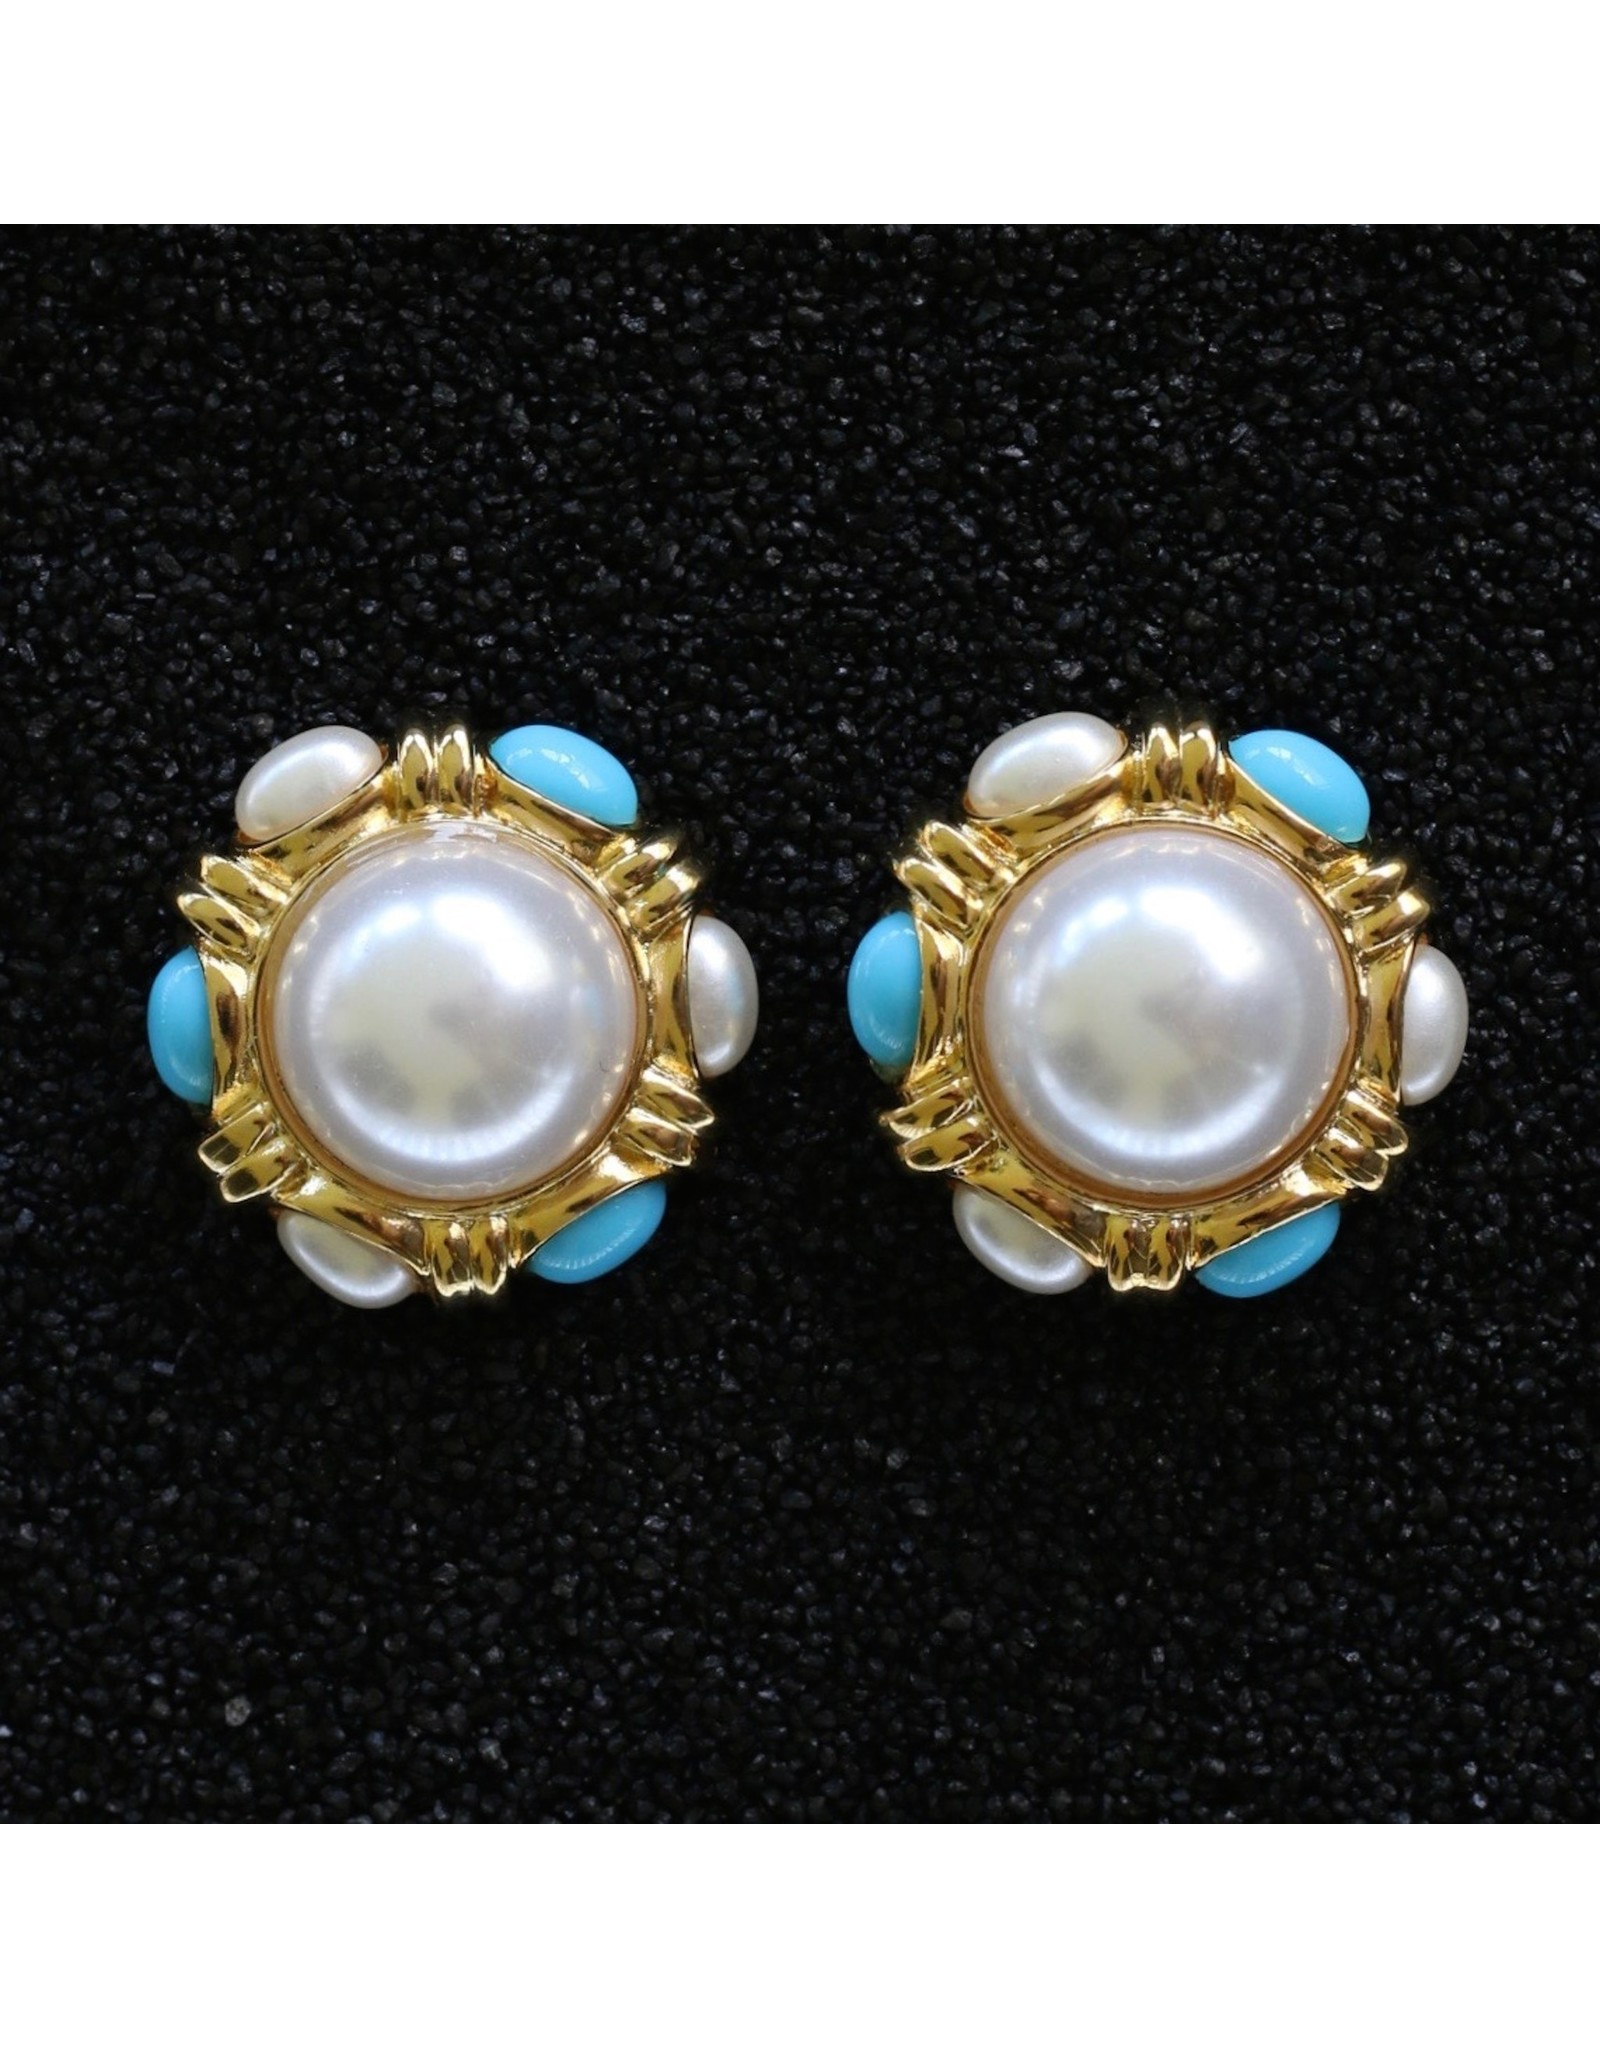 Kenneth Jay Lane Gold, Turquoise and Pearl Button Clip Earring